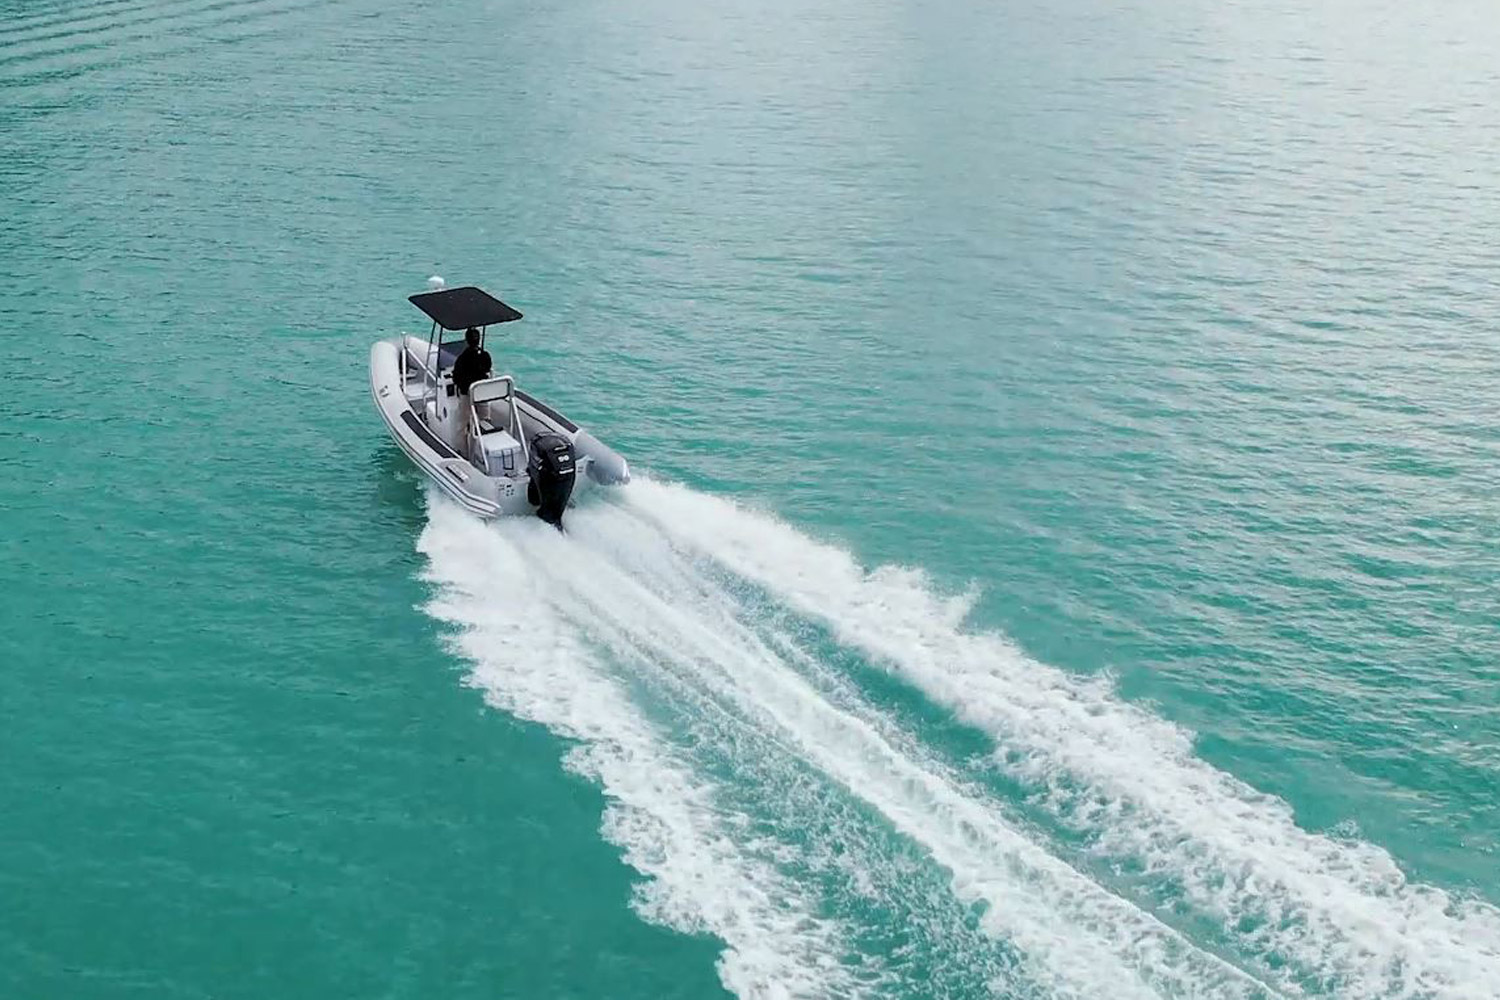 Invincible RIB on the water 2